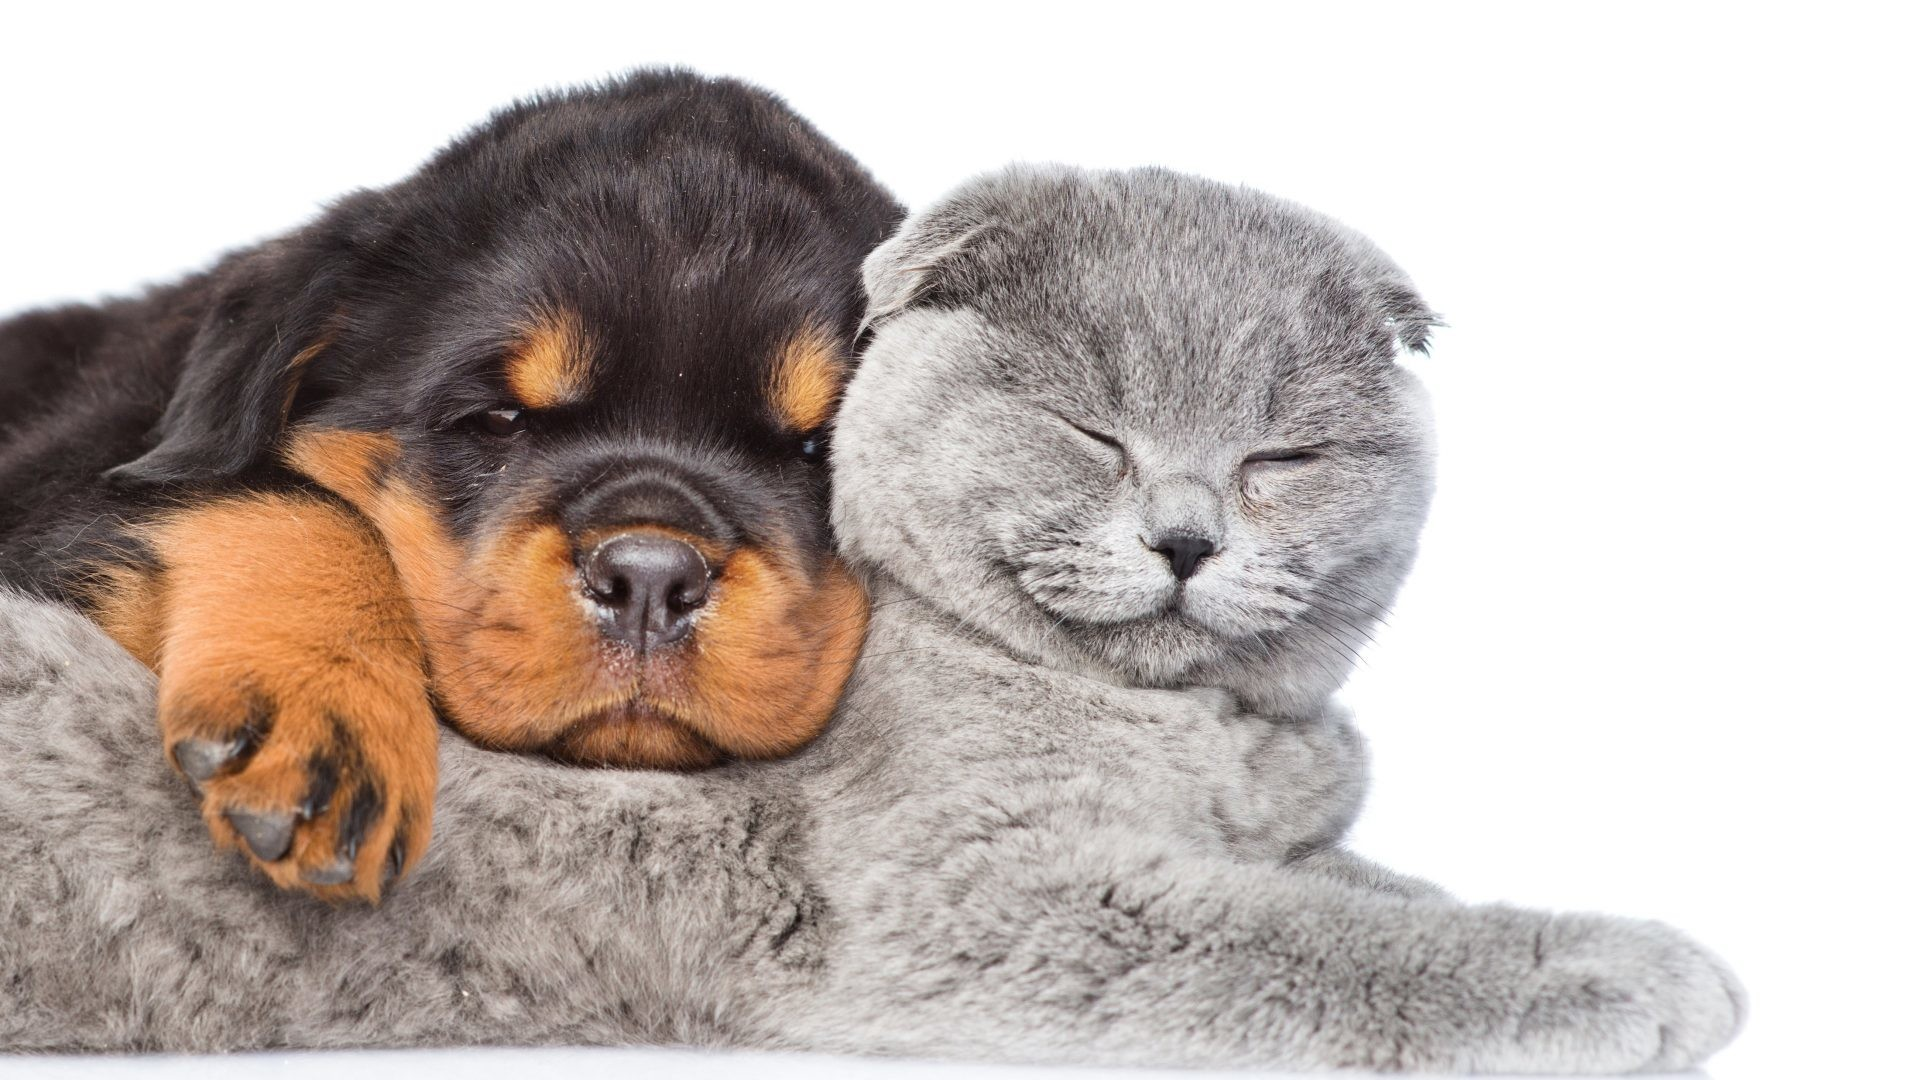 Cat Tag – Puppy Two Cat Kitten White Dog Rottweiler Sleep Baby Animal  Desktop Image for